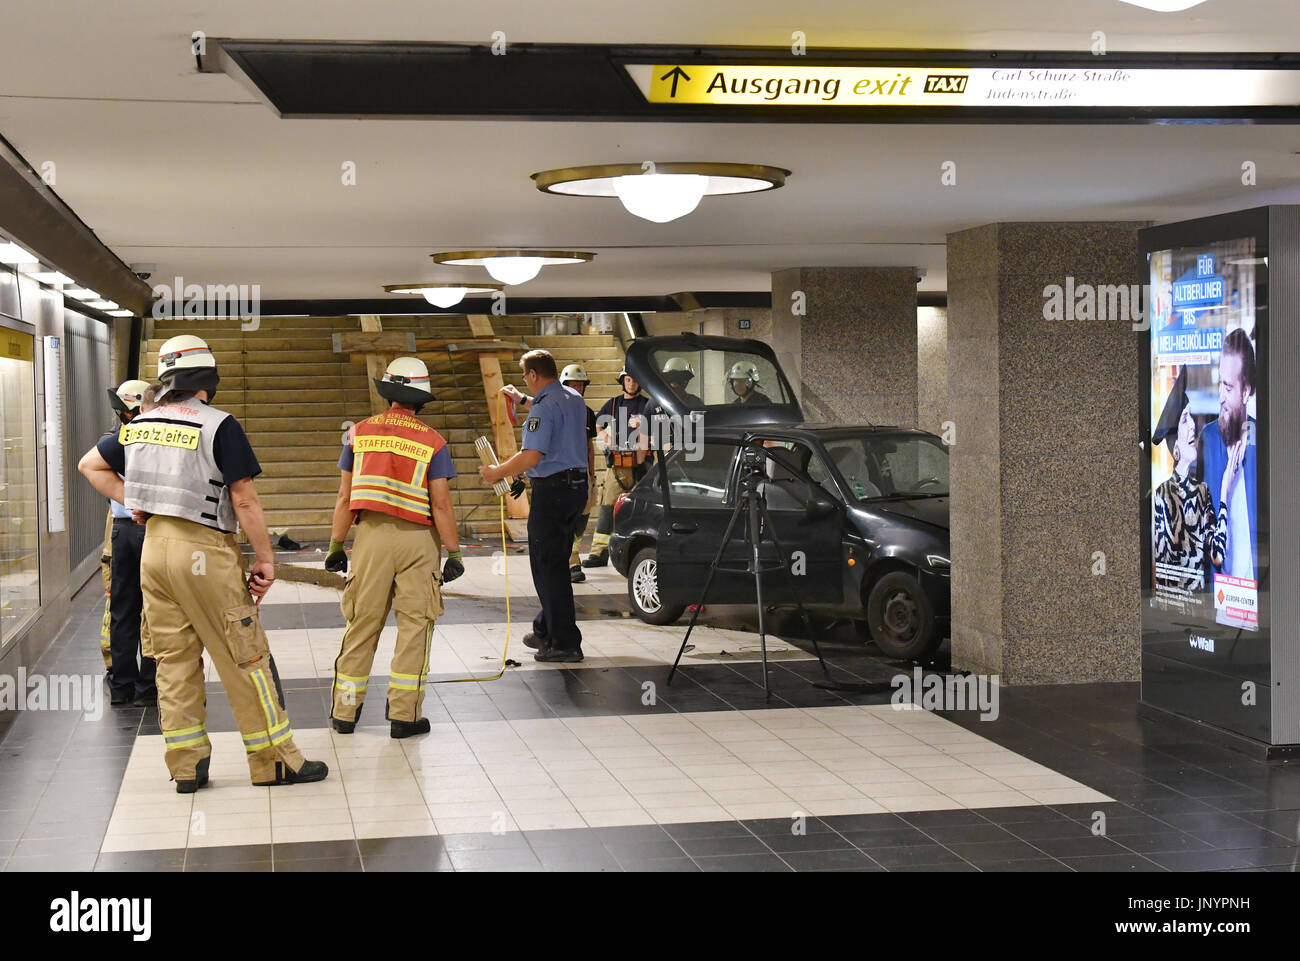 Berlin, Germany. 30th July, 2017. dpatop - A car can be seen in the underground station Rathaus Spandau in Berlin, Germany, 30 July 2017. After a car chase with the police the driver of the Fiesta drove down the stairs to the tracks. The car appeared conspicuous to the police because there had been a search warrant for the number plates of the vehicle. The driver has been arrested. Photo: Paul Zinken/dpa/Alamy Live News - Stock Image